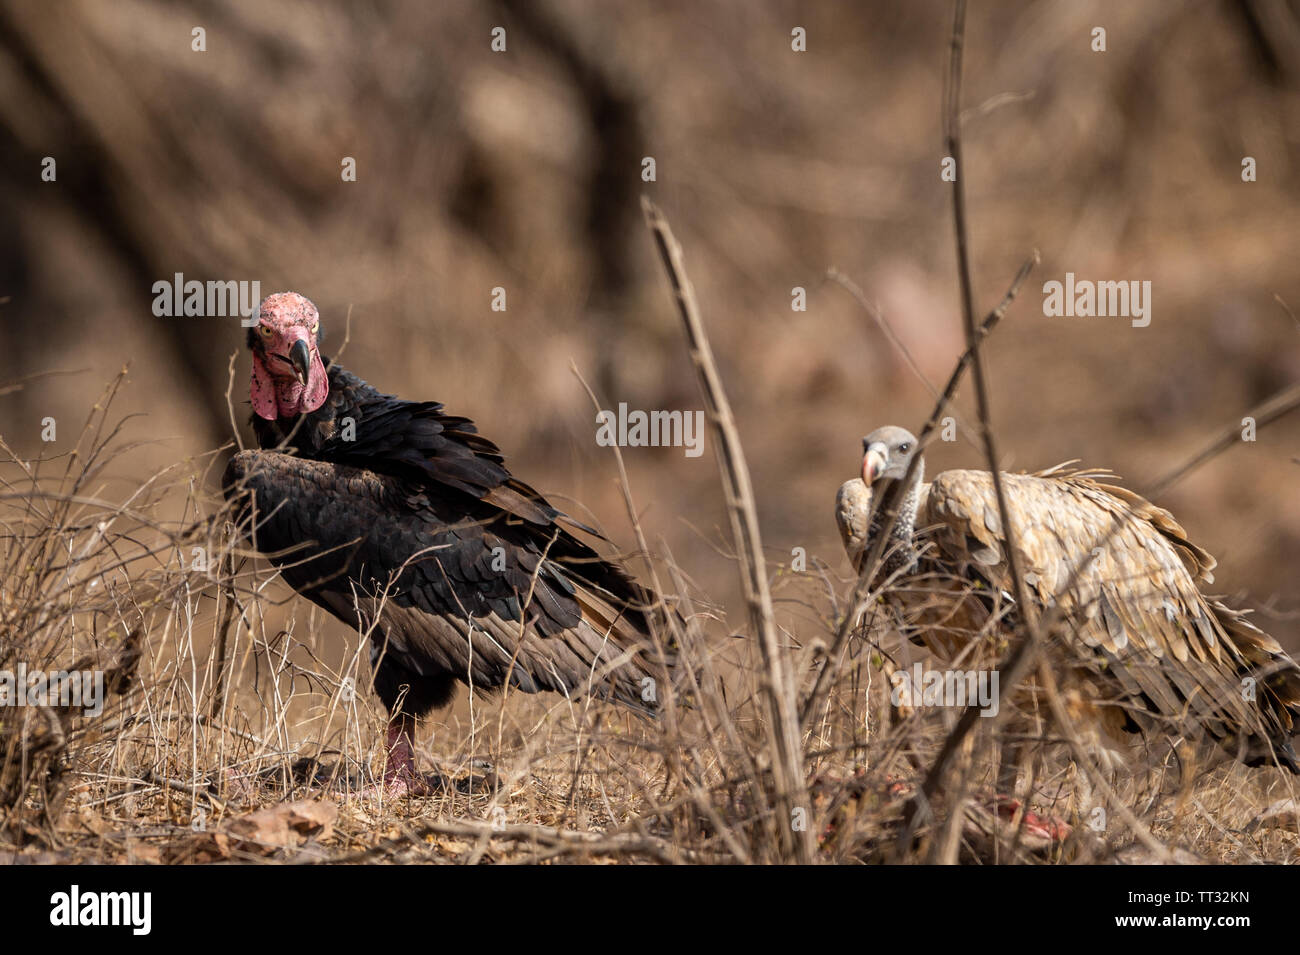 red headed vulture or sarcogyps calvus or pondicherry vulture close up with expression at Ranthambore Tiger Reserve National Park , Rajasthan Stock Photo